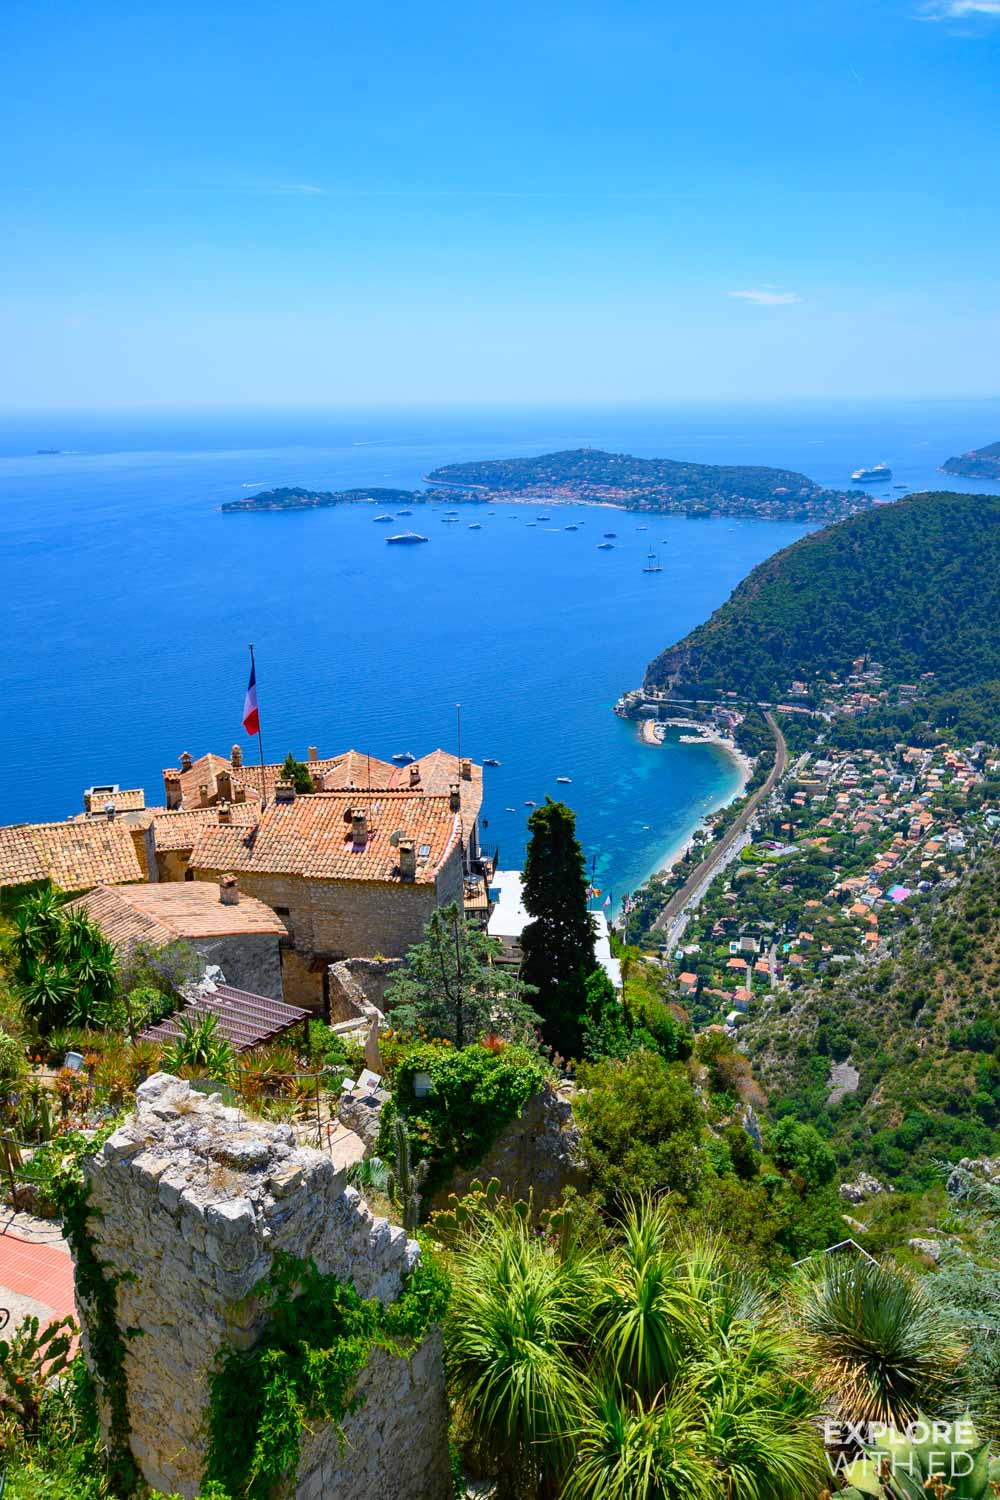 The stunning view from the exotic garden at Eze over the Cote D'Azur, France